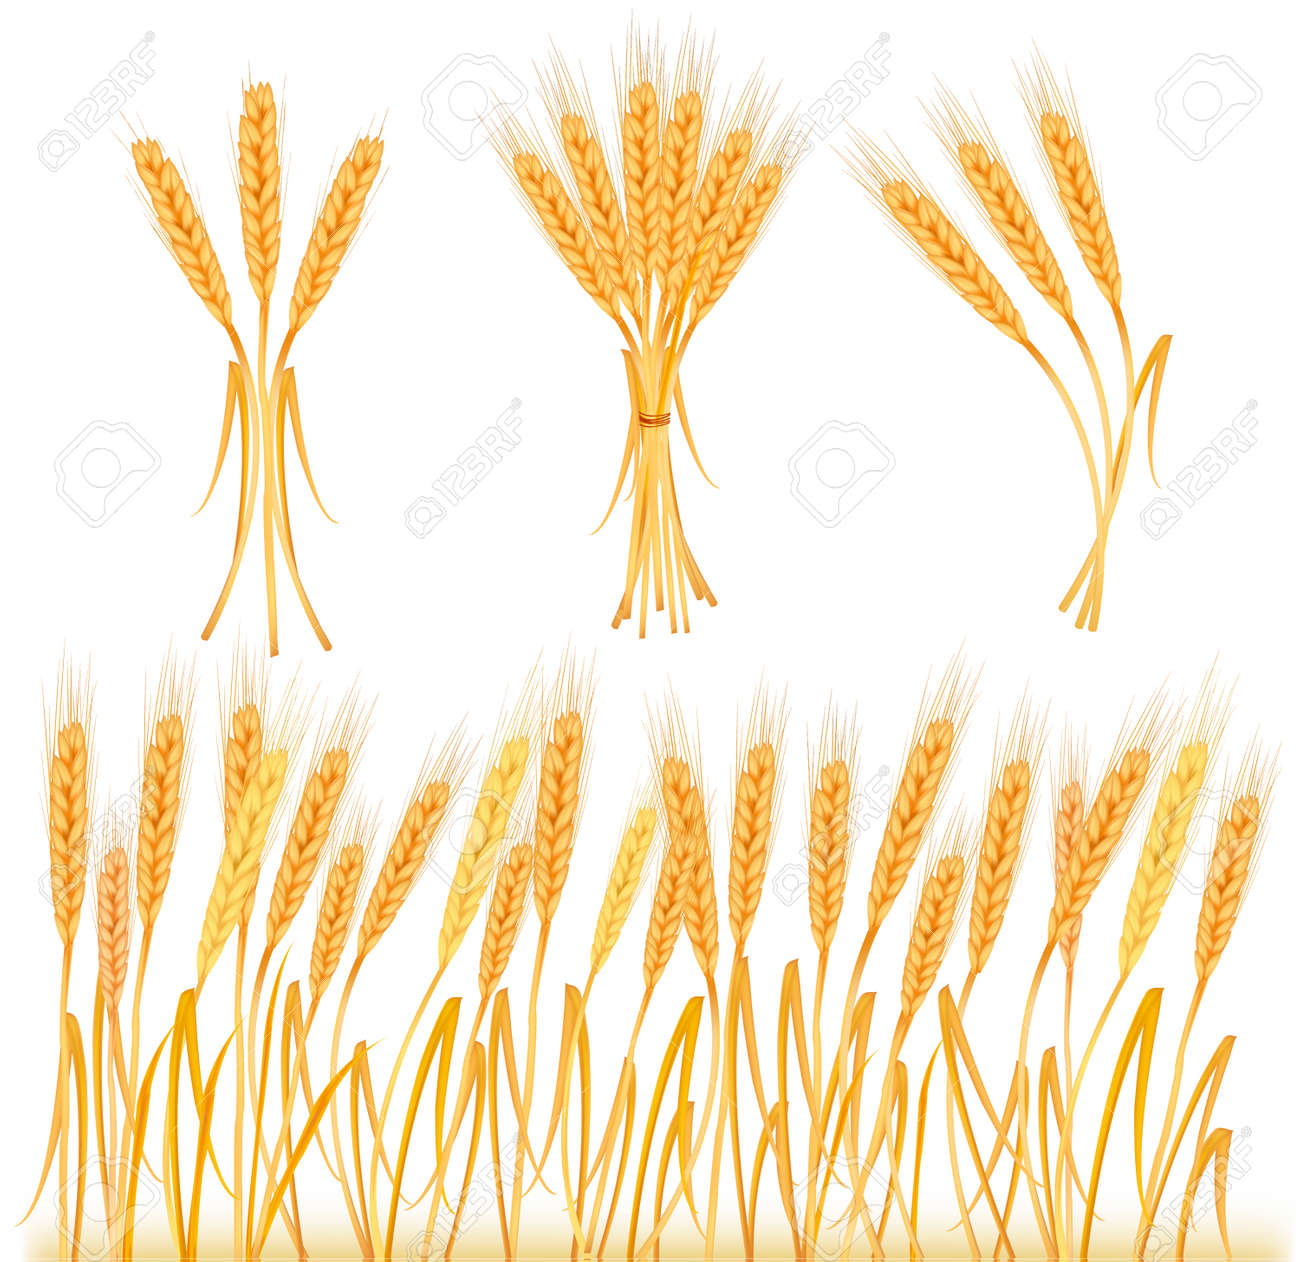 Ripe yellow wheat ears, agricultural illustration Stock Vector - 9053489